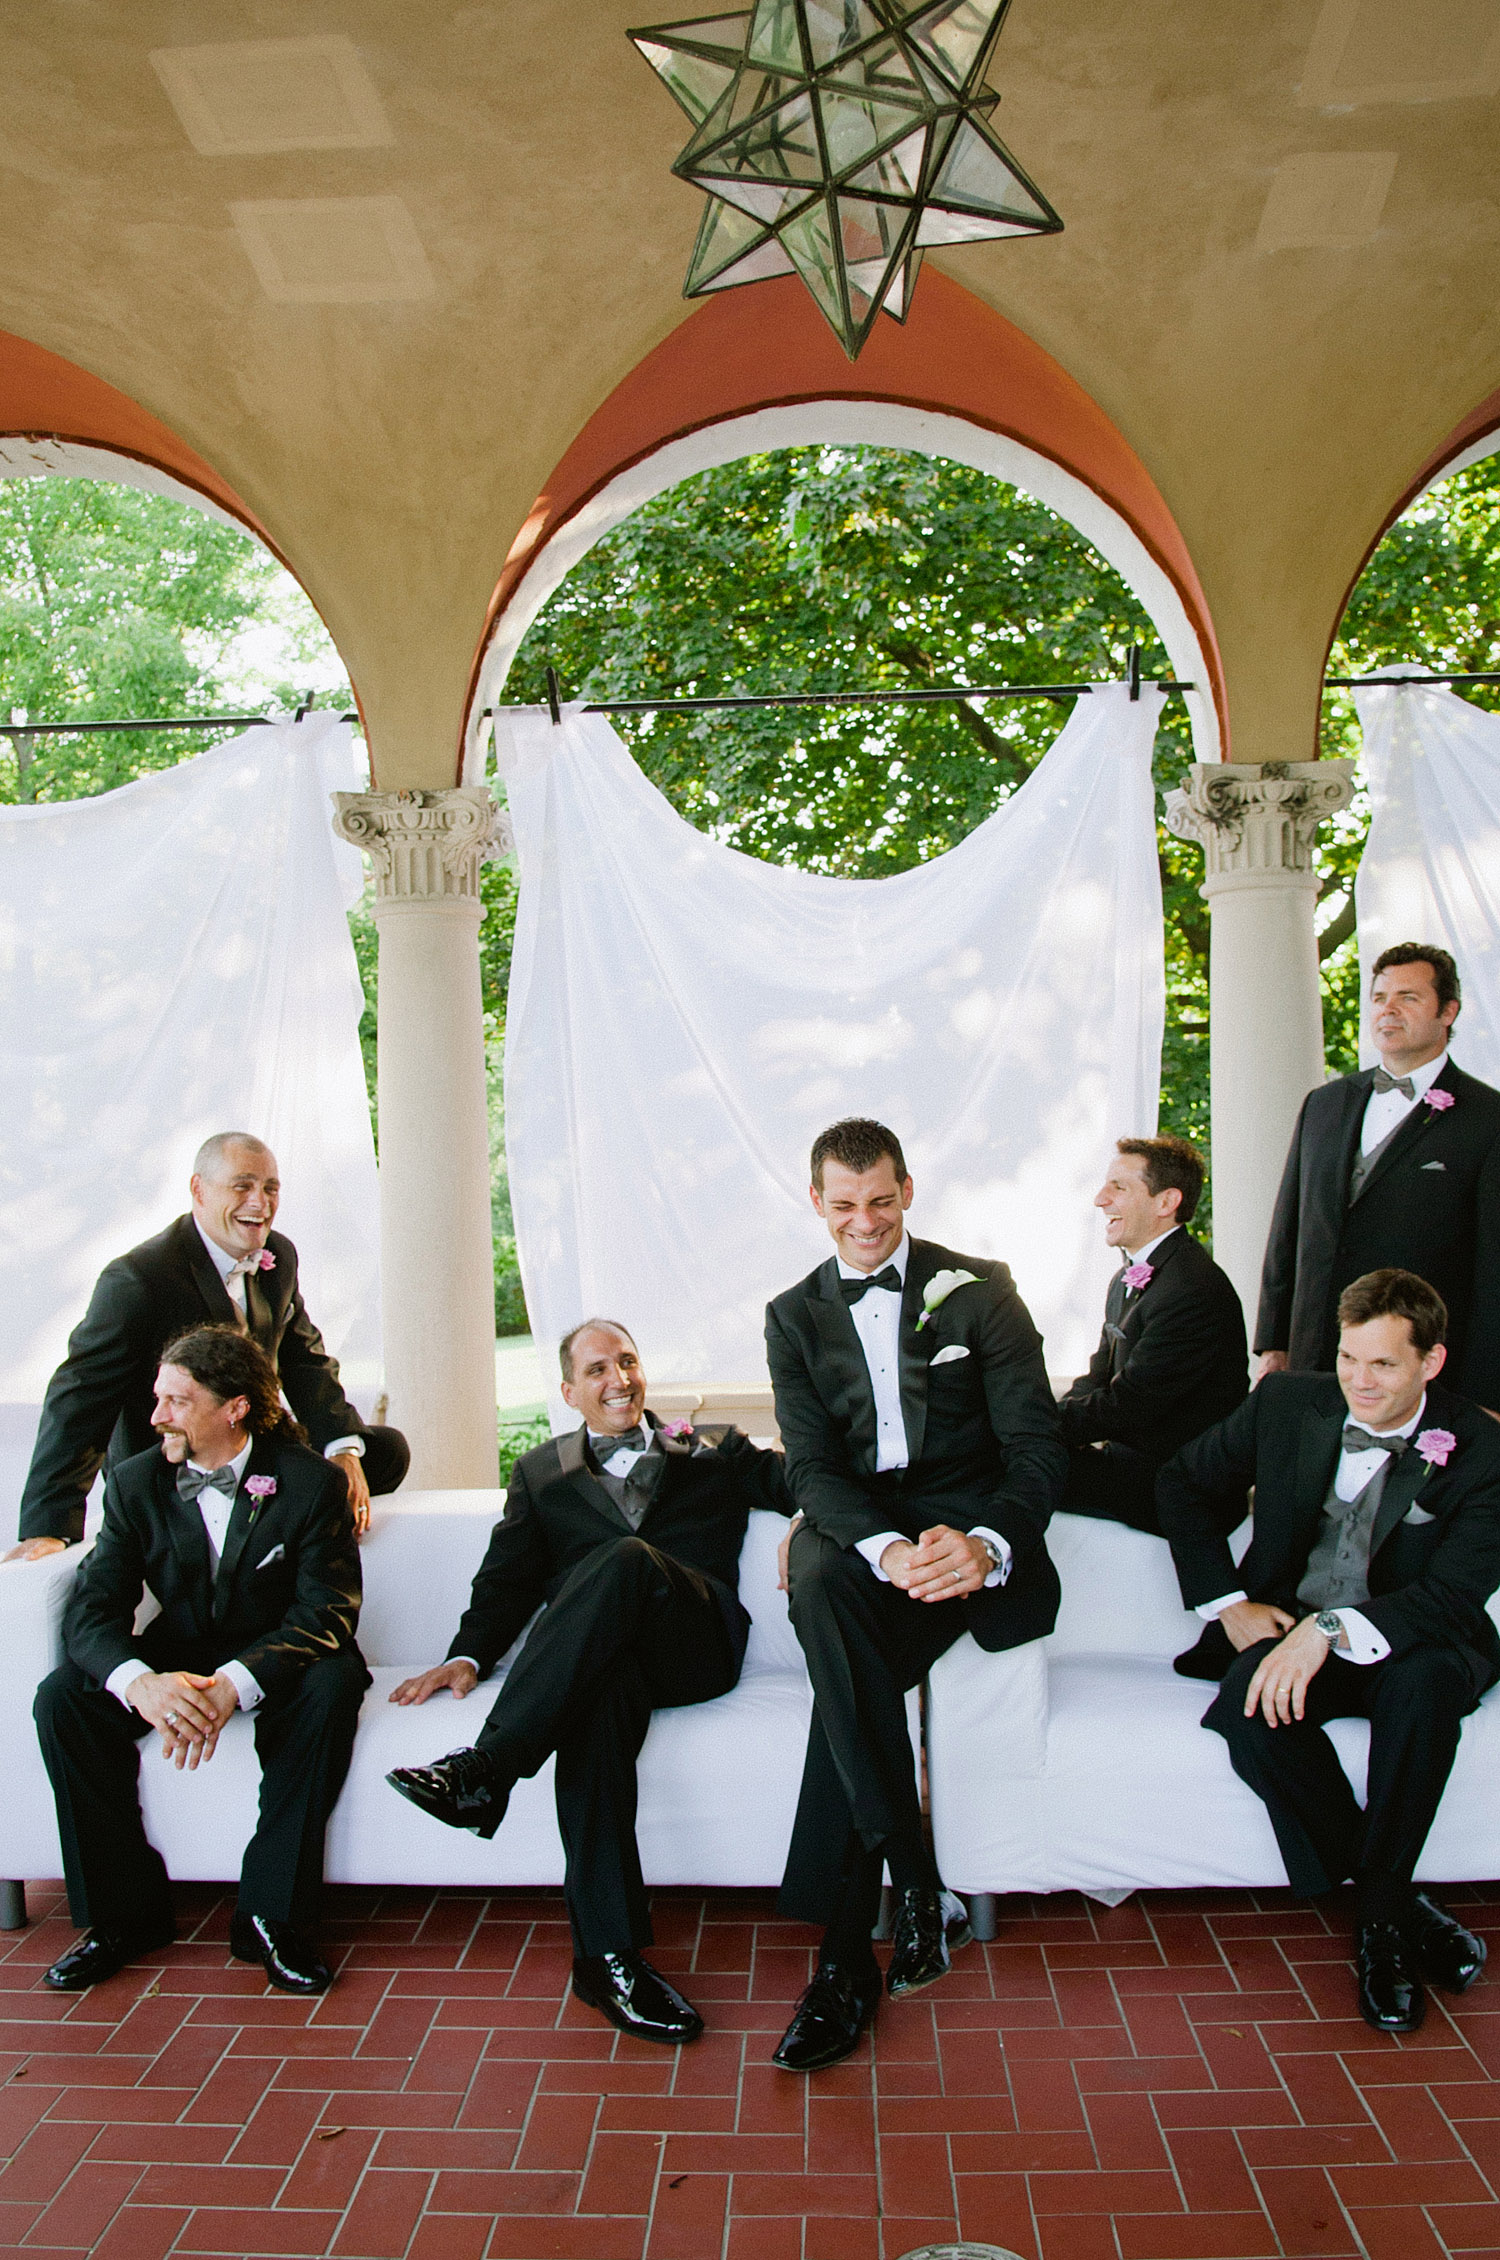 the groomsmen hang out during their Destination Italian Wedding at the Villa Terrace - where Destination Wedding Photographer Lexia Frank loves to shoot film for her luxury weddings